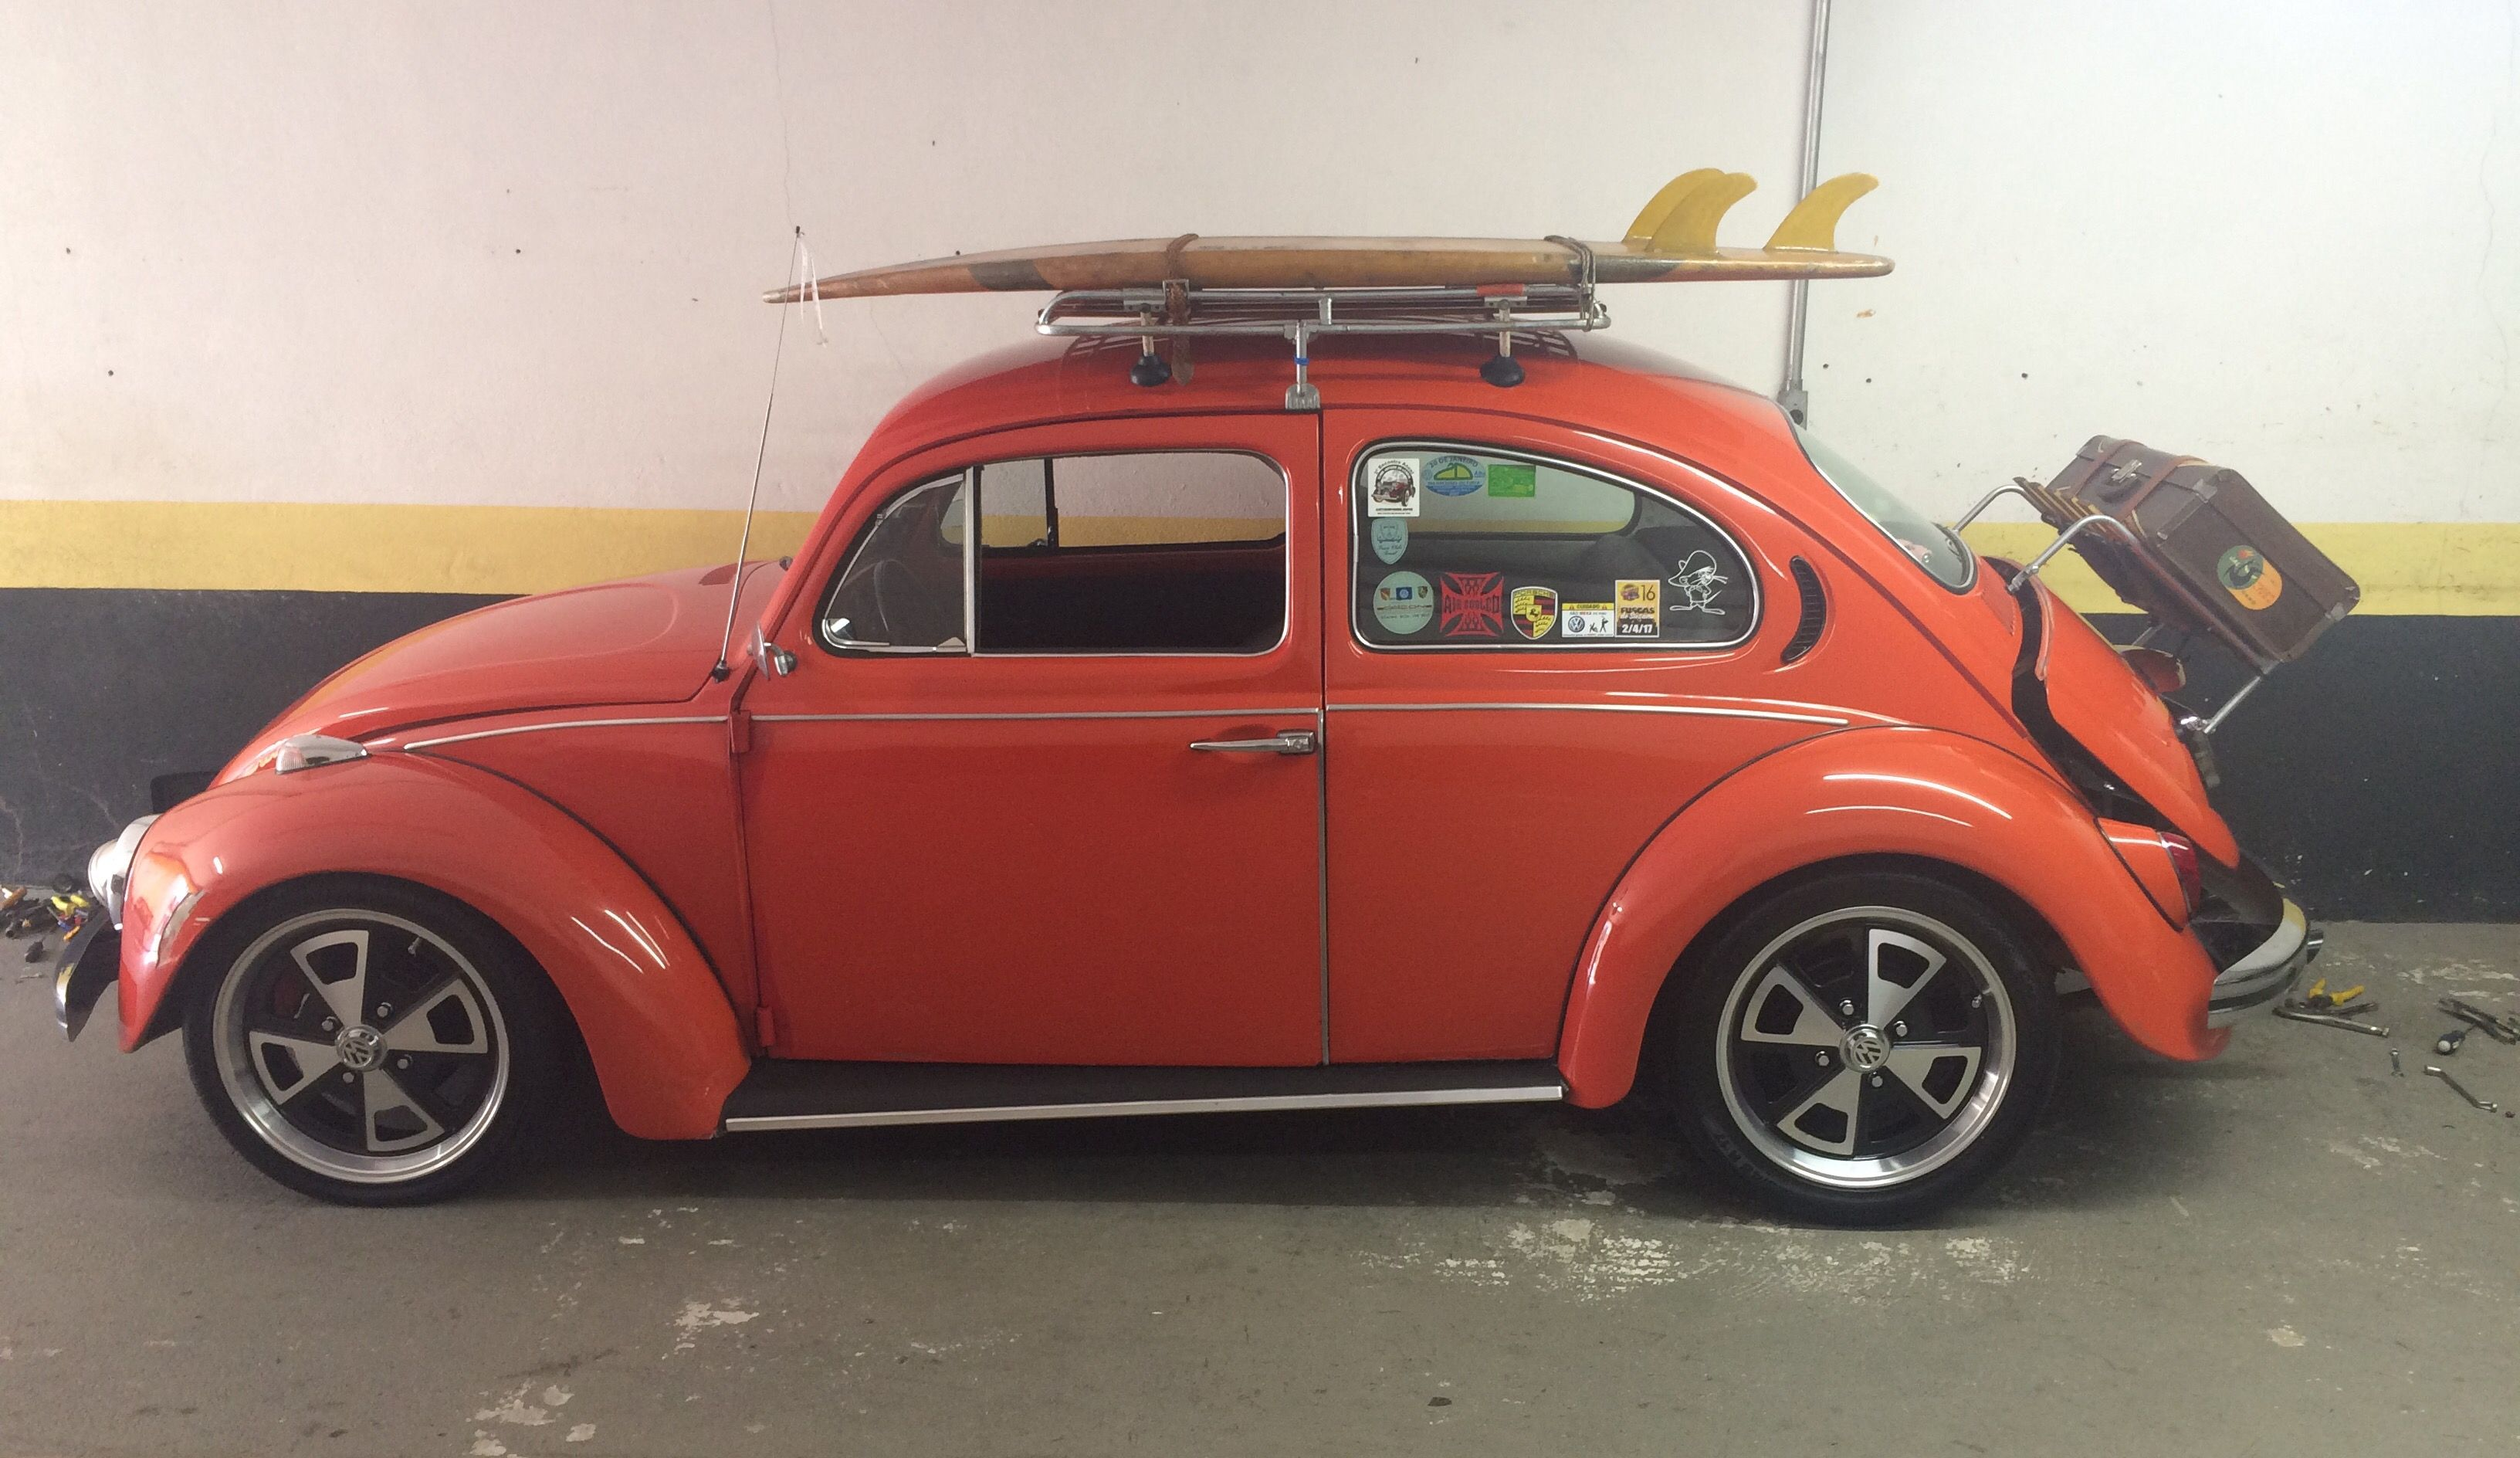 bath inside australia guide factory toys canada sale review beyond ts pink cute ebay tent climbing the edition marvelous size van vw beetle play monster limited bed at camper volkswagen and nz green full craigslist sportsmans for